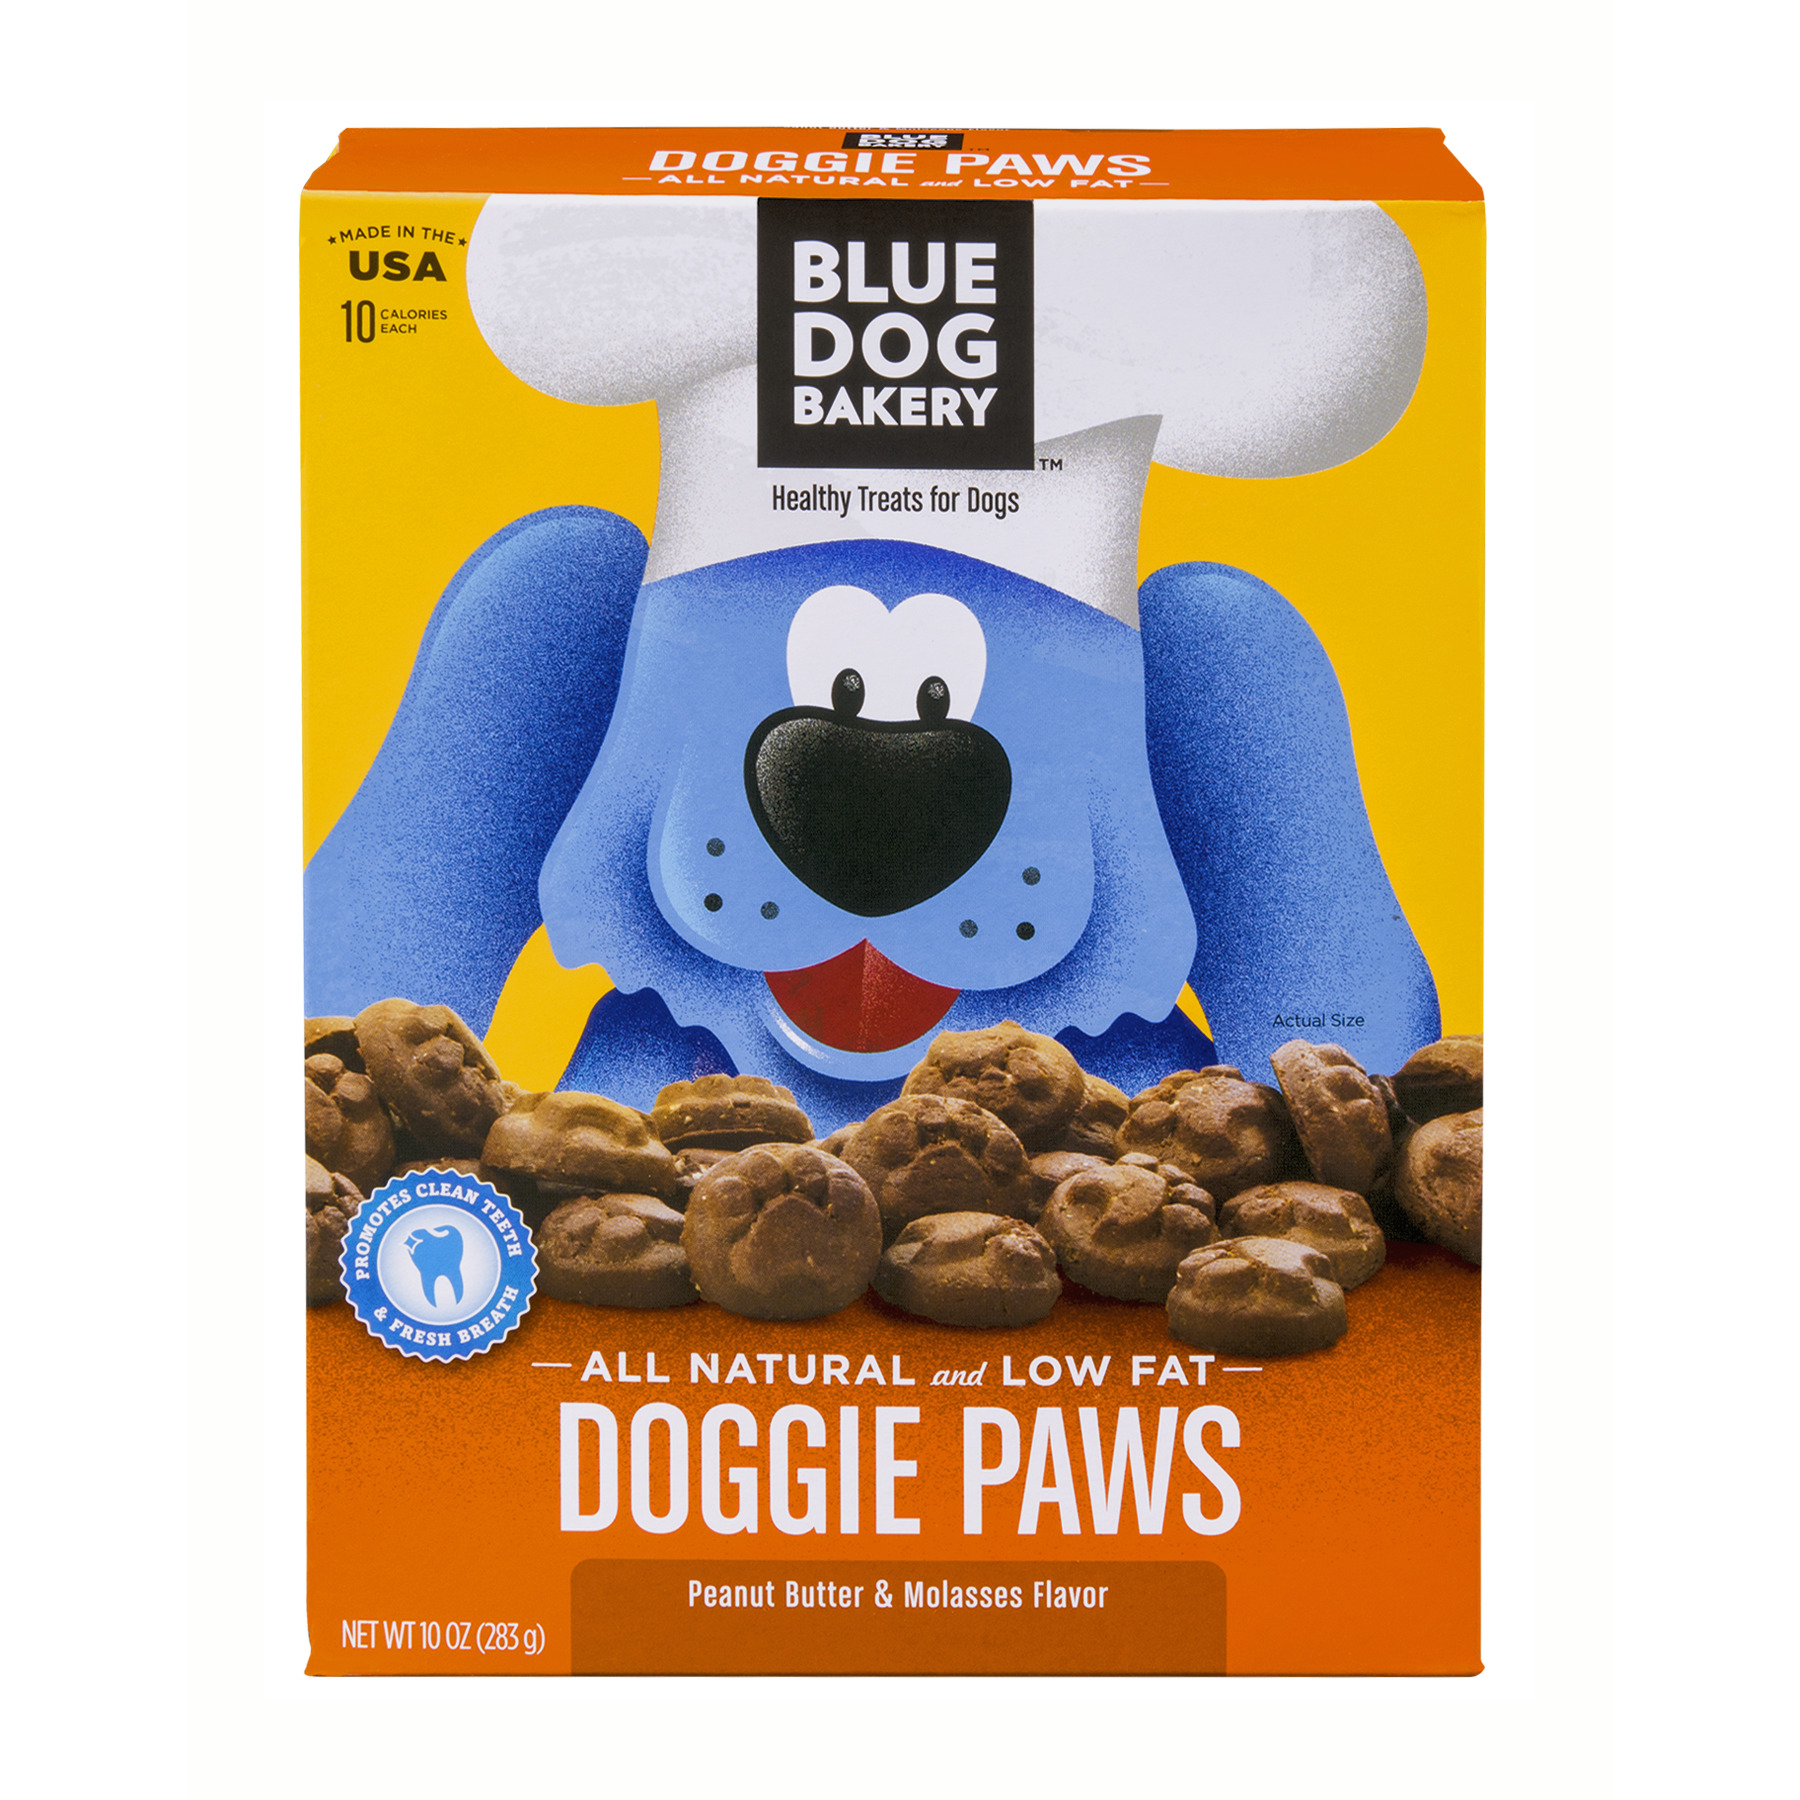 Blue Dog Bakery Doggie Paws Peanut Butter Flavor